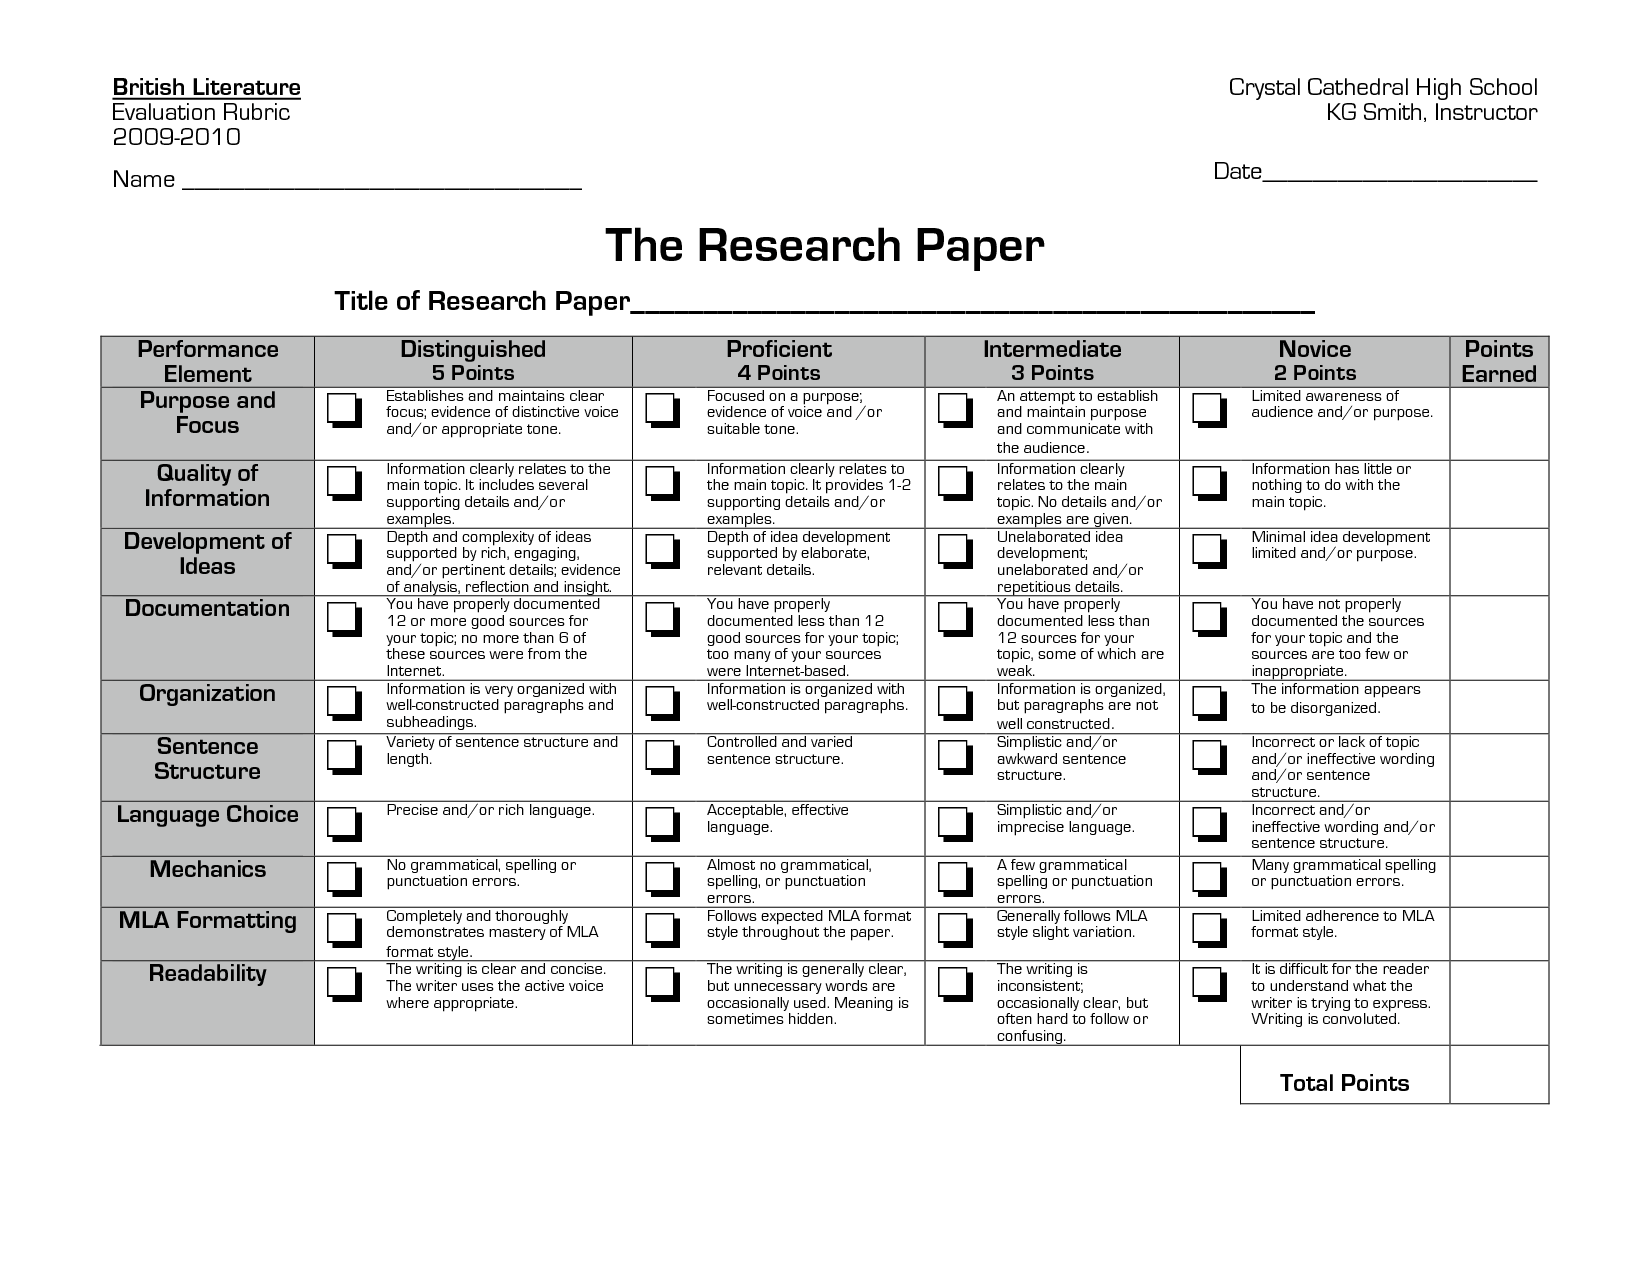 scoring rubric research report/paper This fun character body book report project contains assembling directions, first draft worksheets, final draft templates, grading rubric, and a matching bulletin.